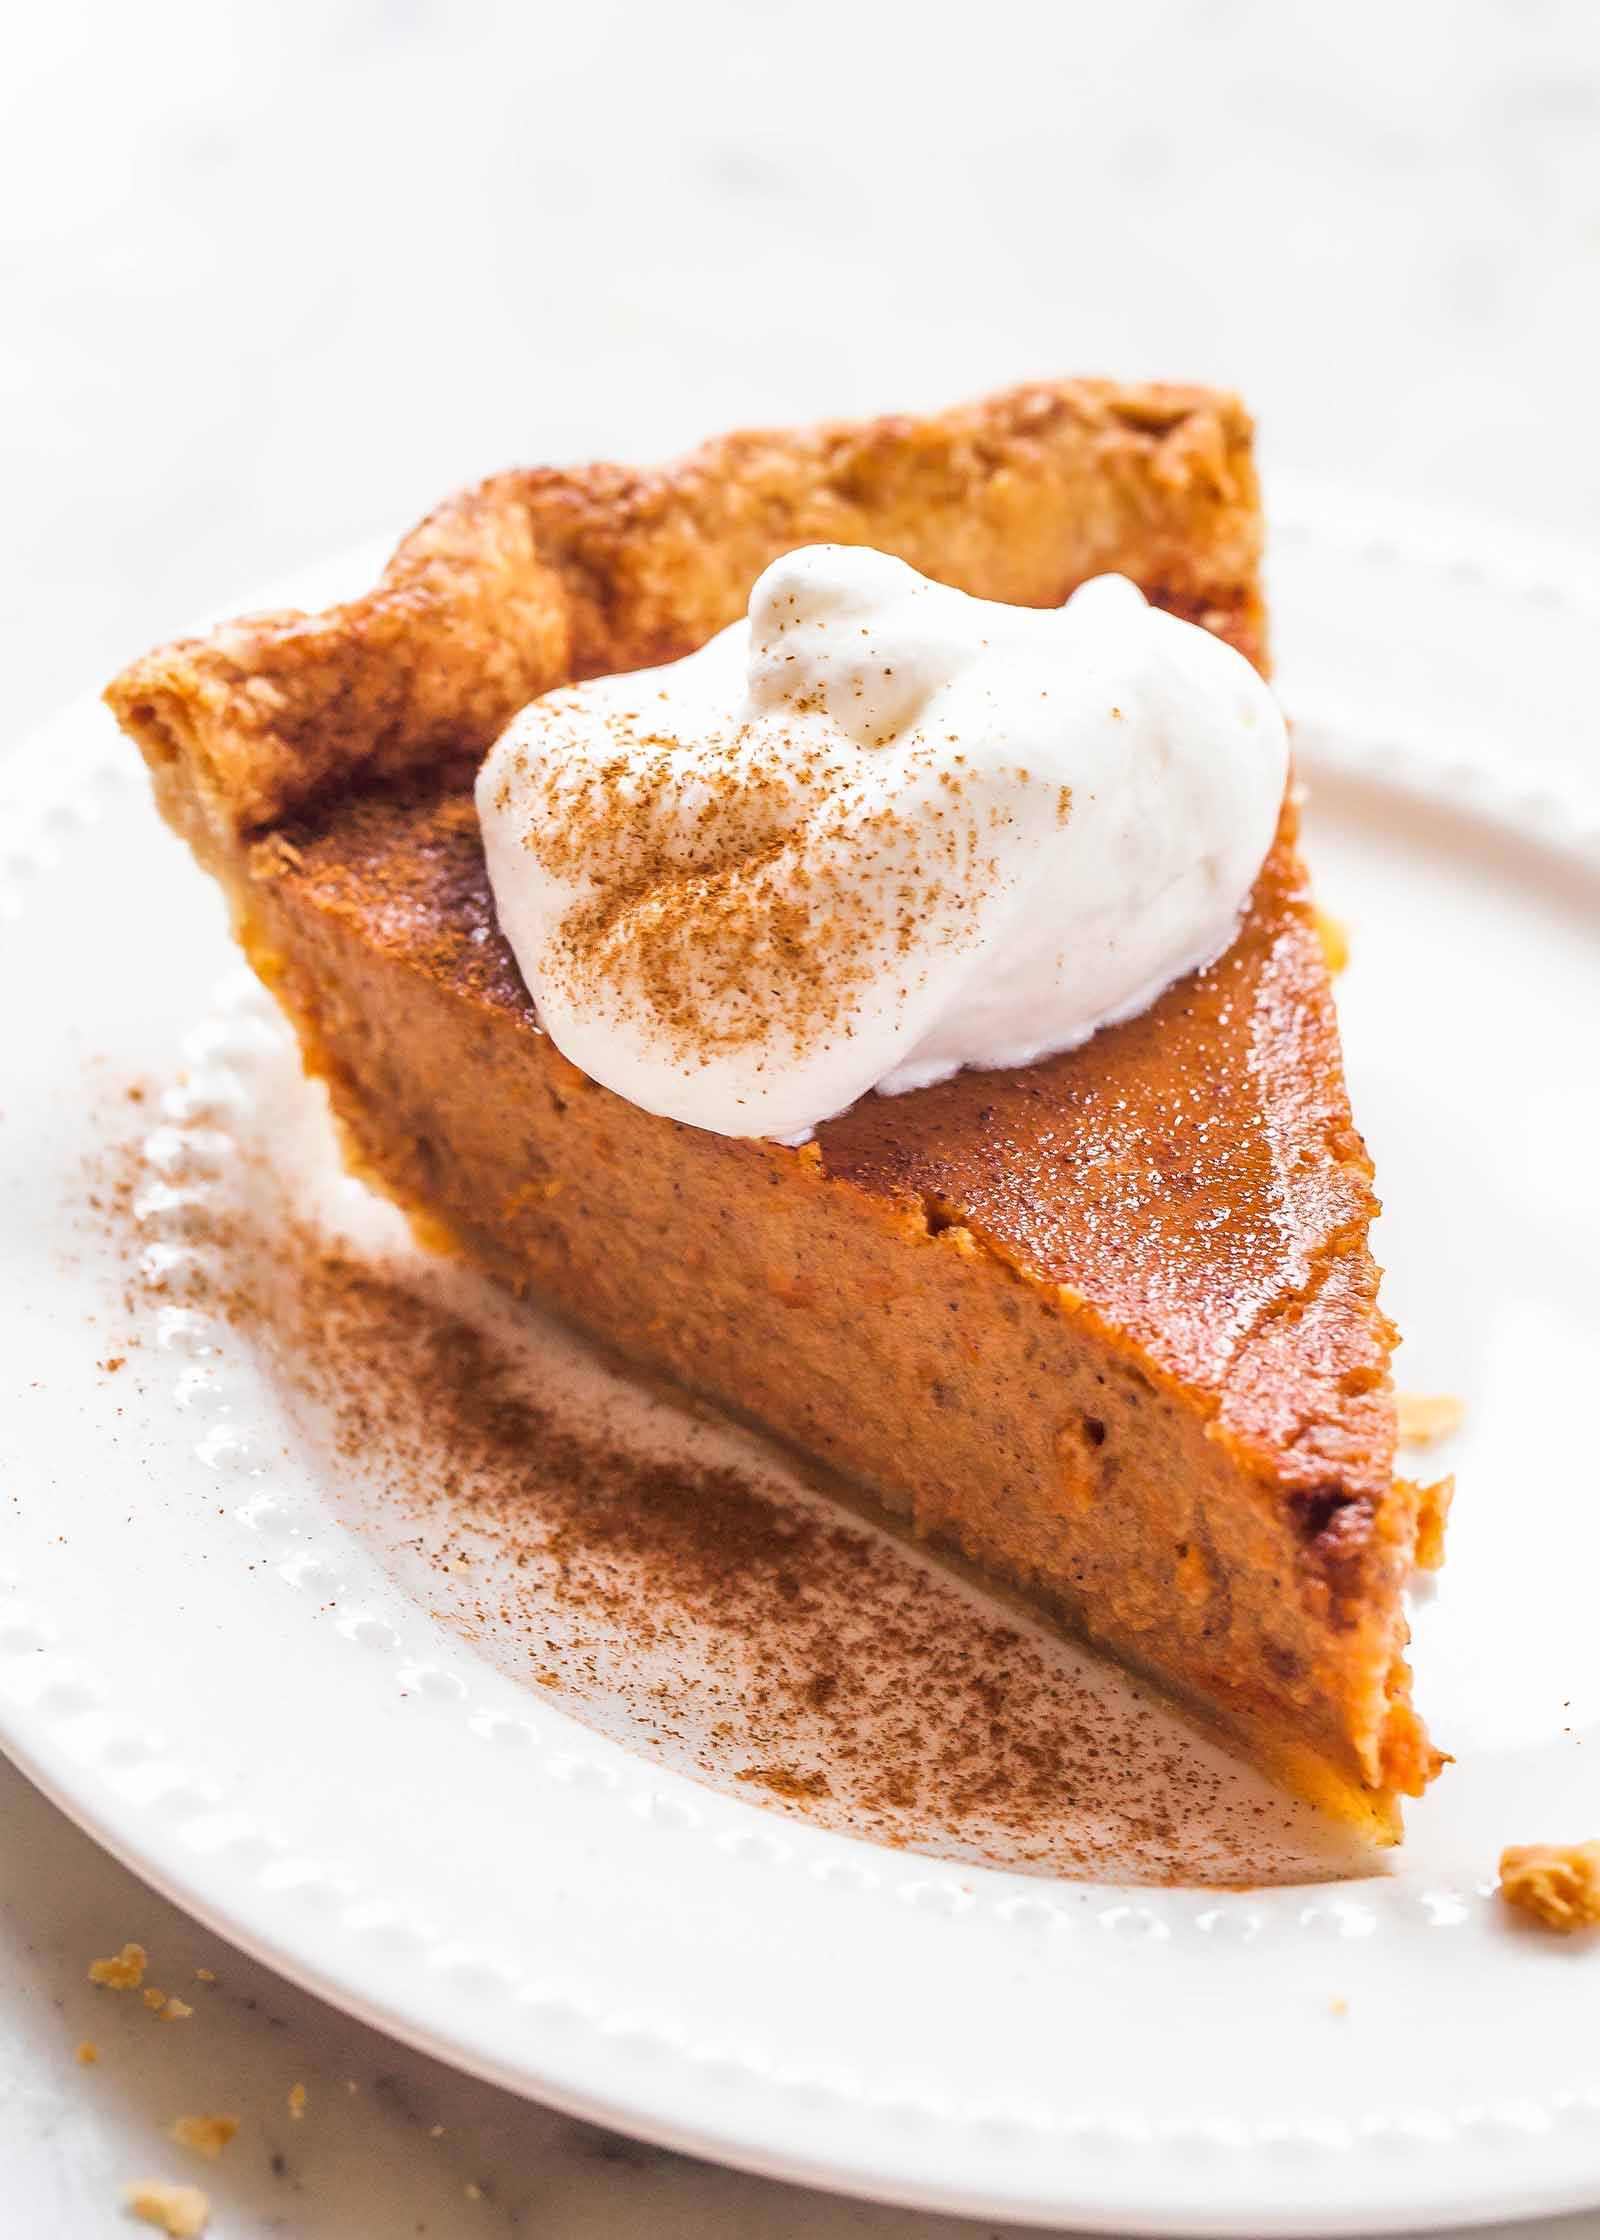 Slice of sweet potato pie on a white plate with whipped cream dusted with cinnamon and fork.